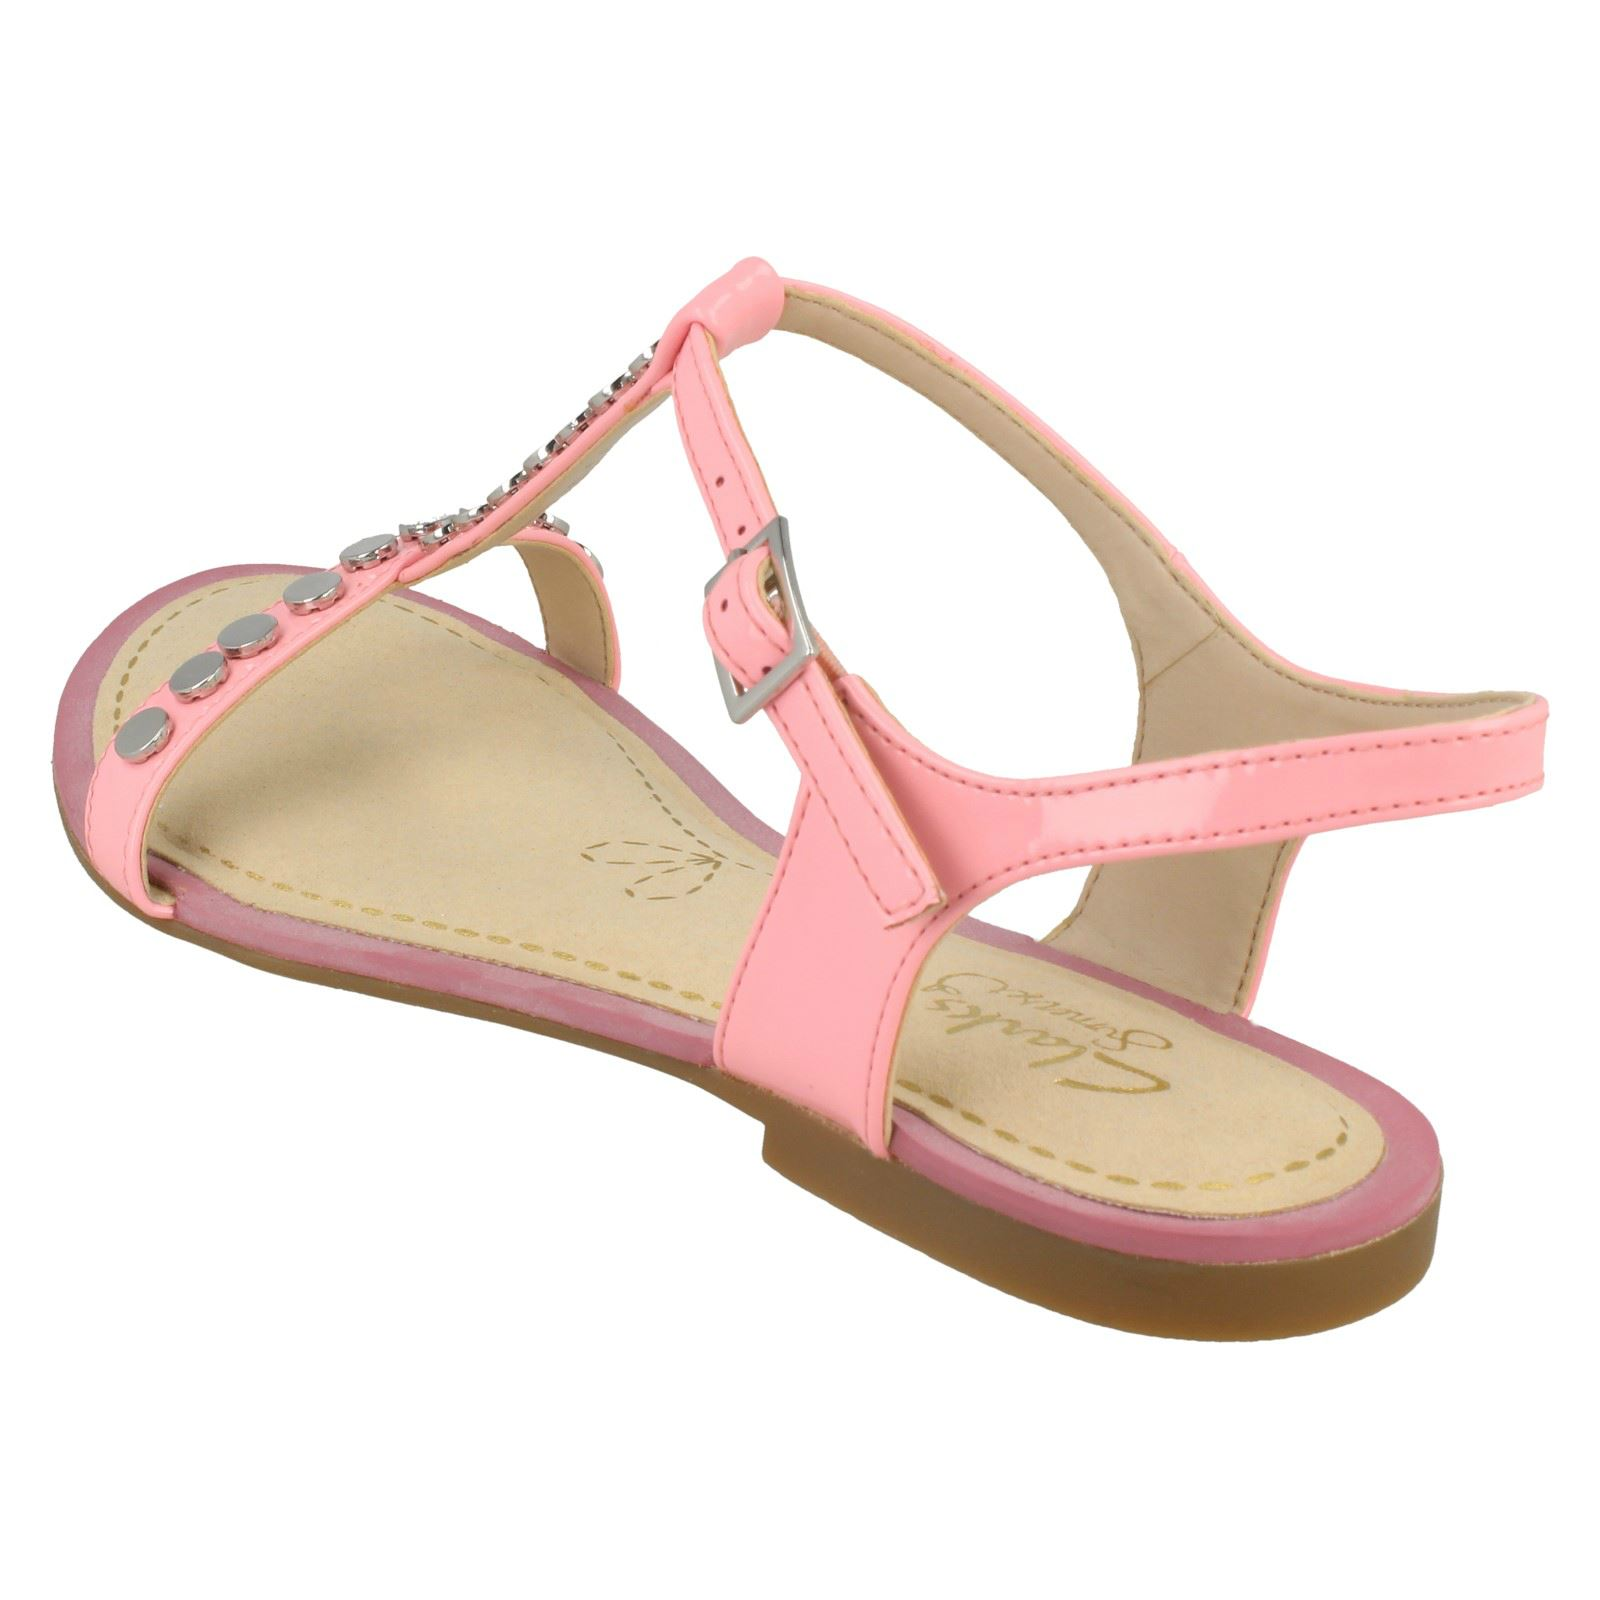 55aef7897 Ladies Clarks Flat Studded Buckled Summer Sandals Sail Festival 5 UK Pink  D. About this product. Picture 1 of 10  Picture 2 of 10  Picture 3 of 10   Picture ...